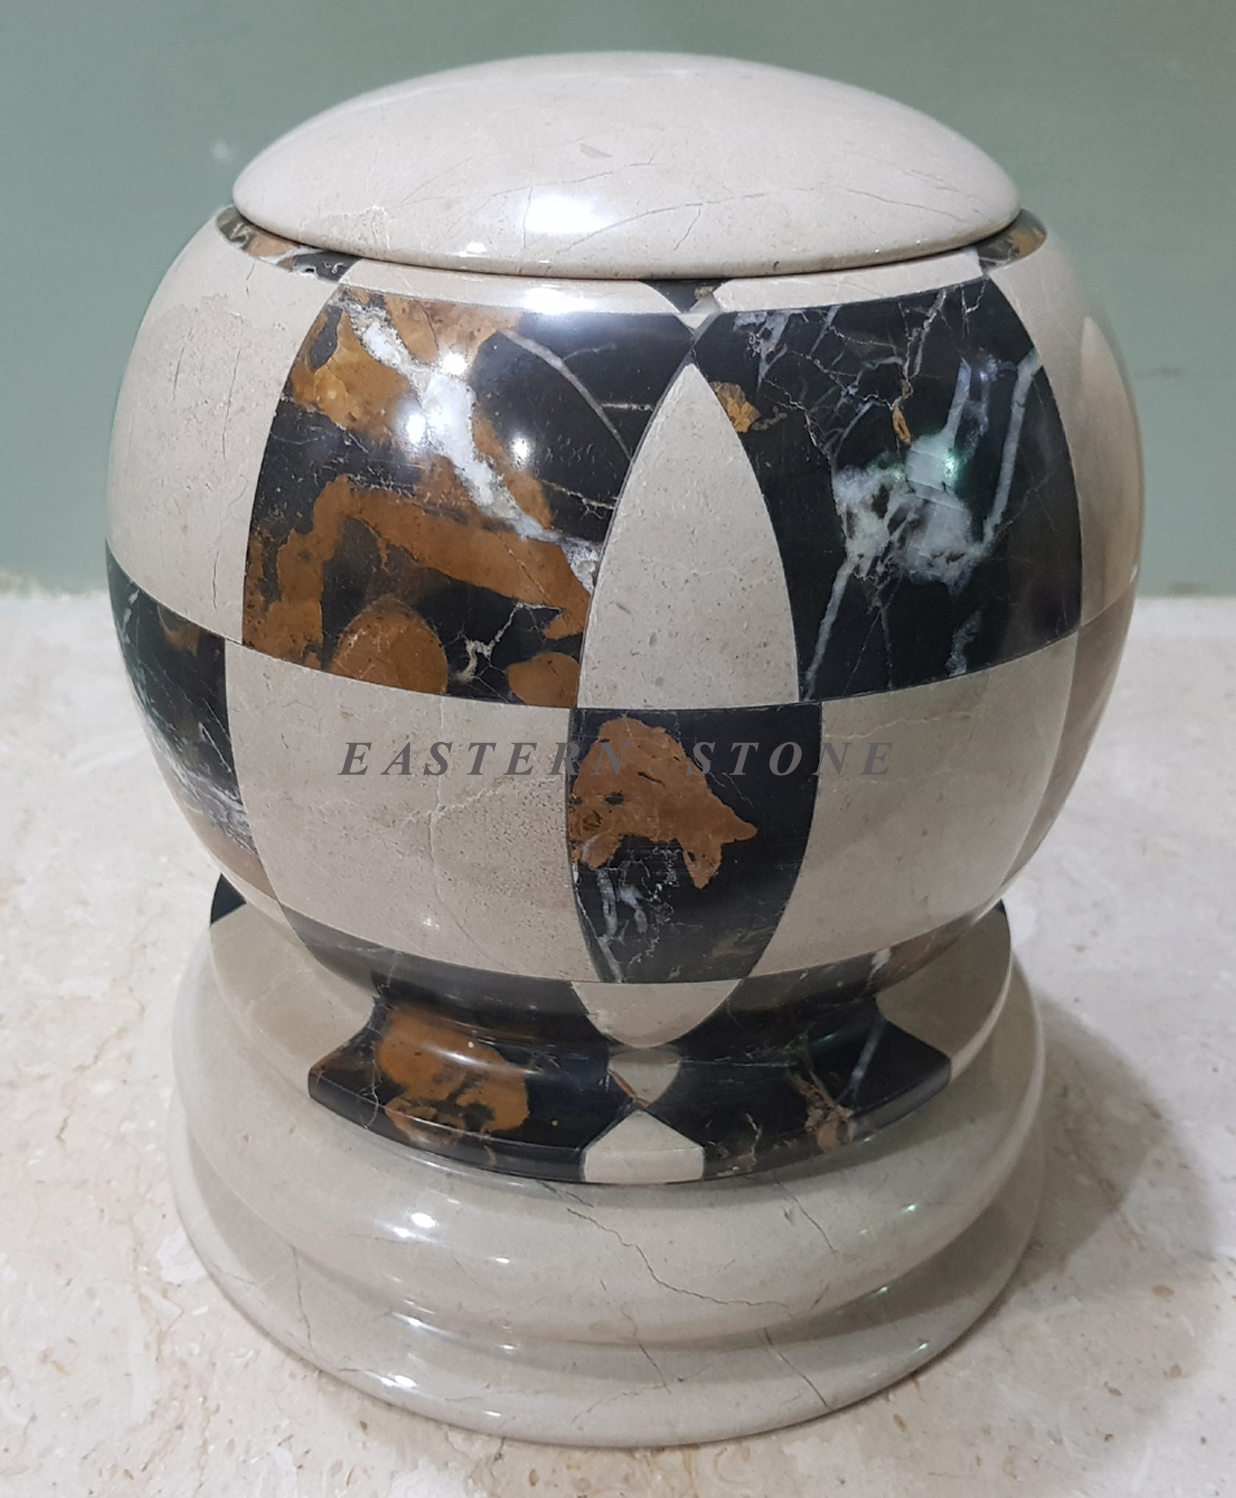 NEW EUROPEAN CREMATION URNS, ASH URNS, FUNERAL URNS DESIGN SHAPES